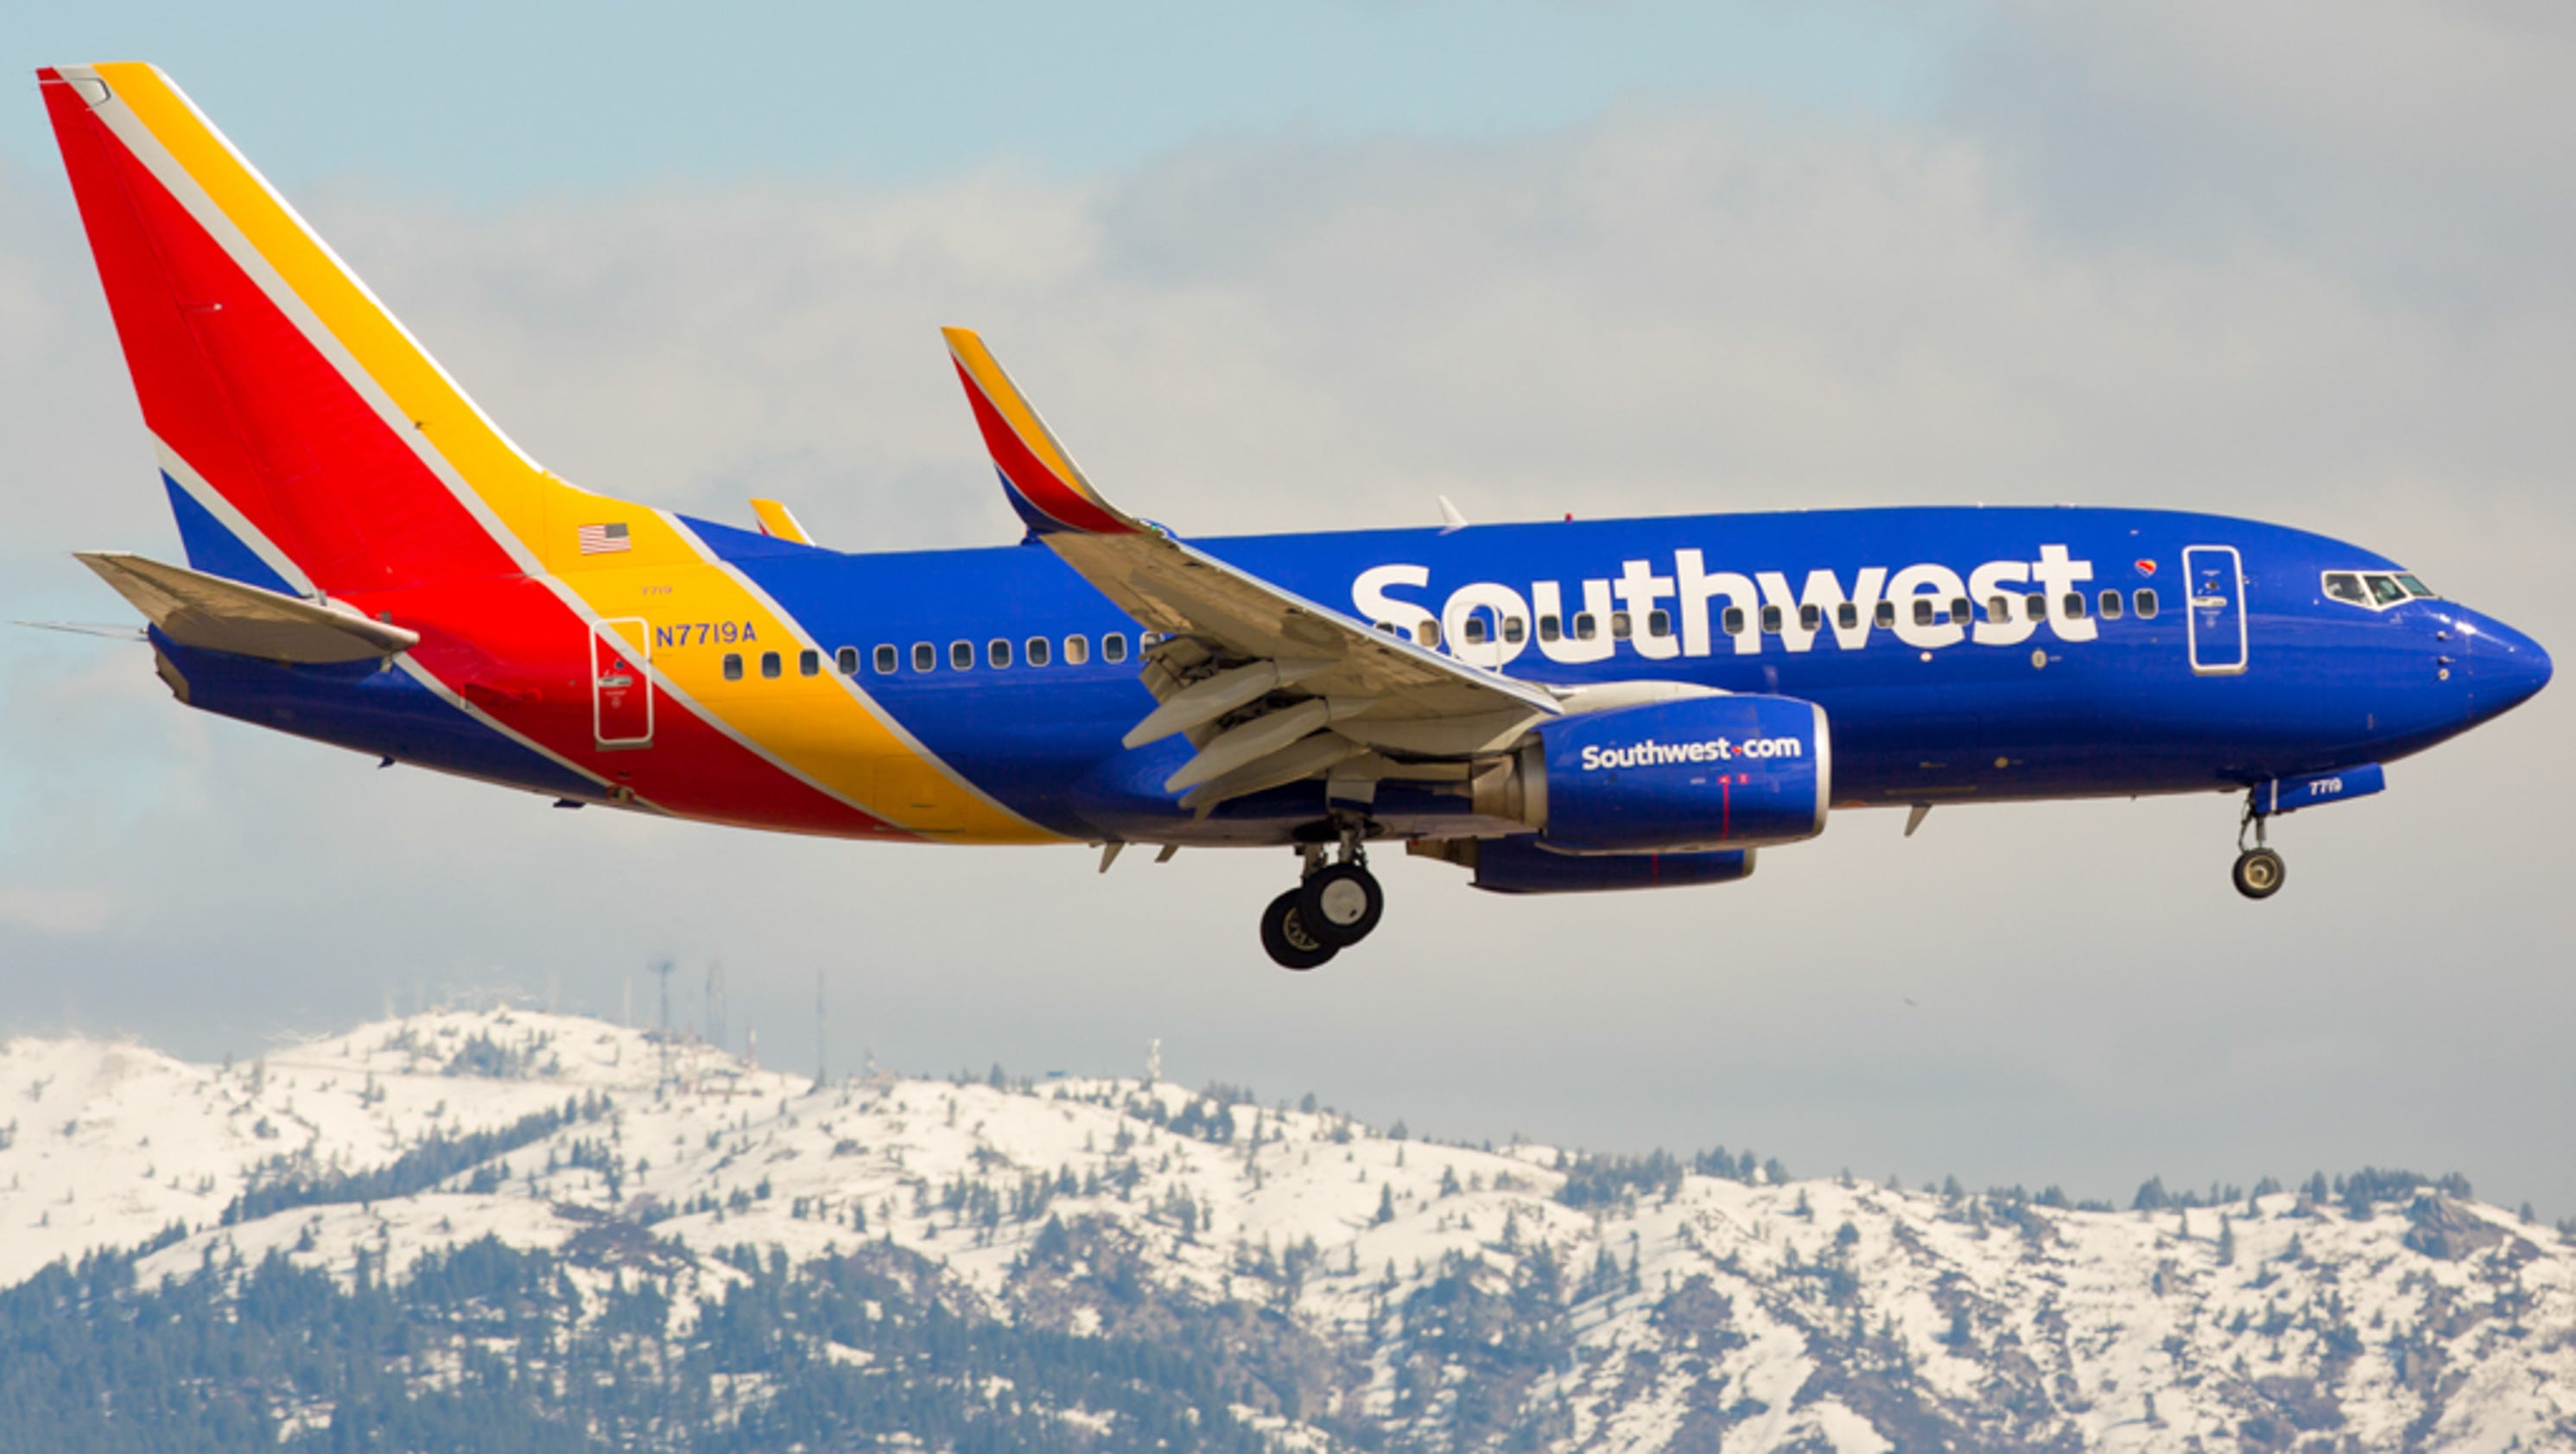 Southwest Airlines is offering low-cost domestic flights as part of a seasonal promotion, with some flights for this fall and winter starting as low as $49 one-way and $97 round-trip.